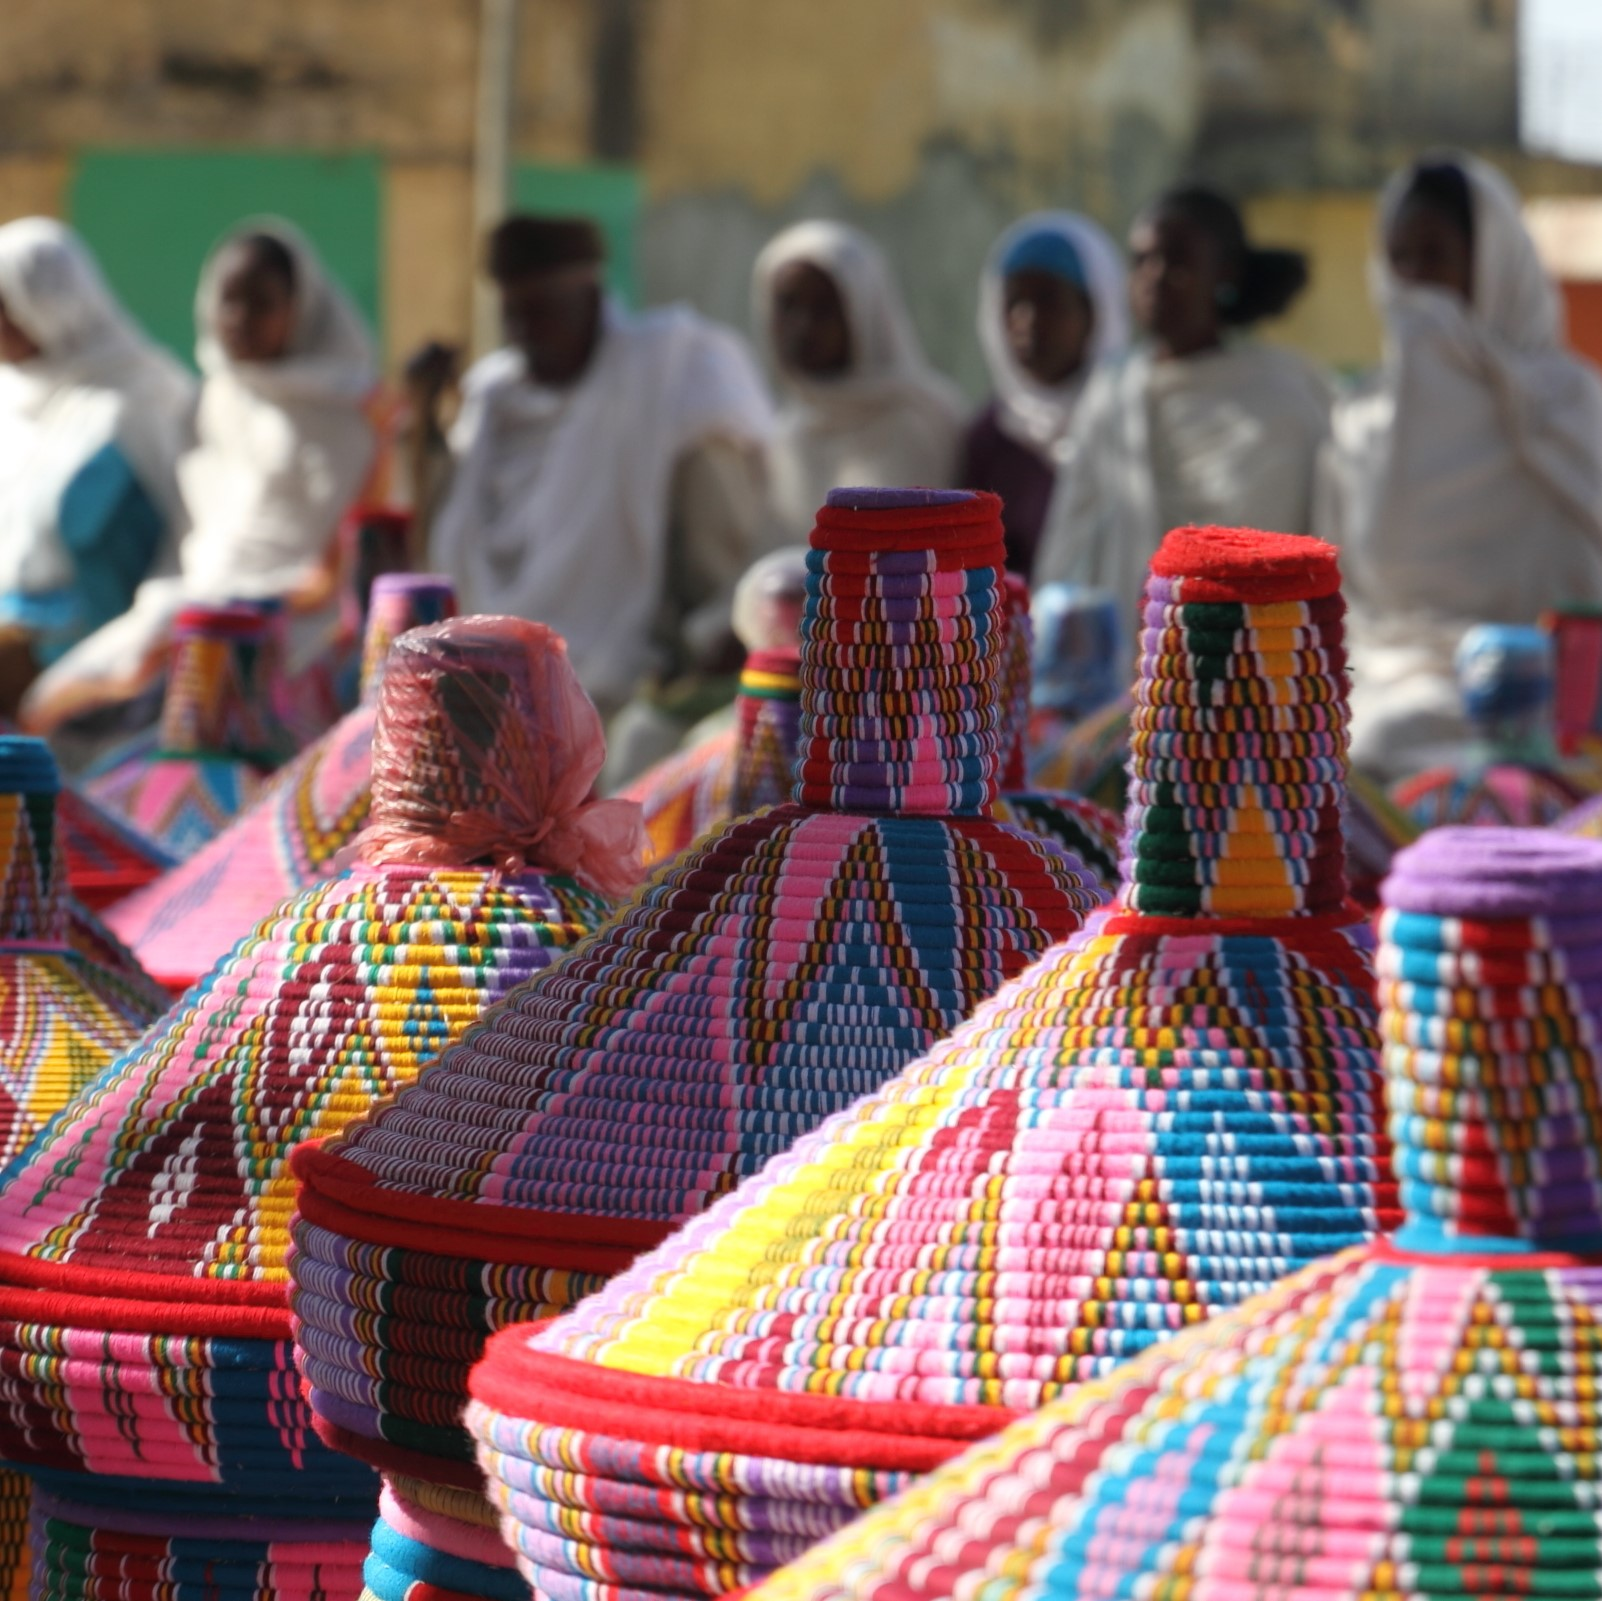 Colorful Basket Market and Vendors - Axum, Ethiopia